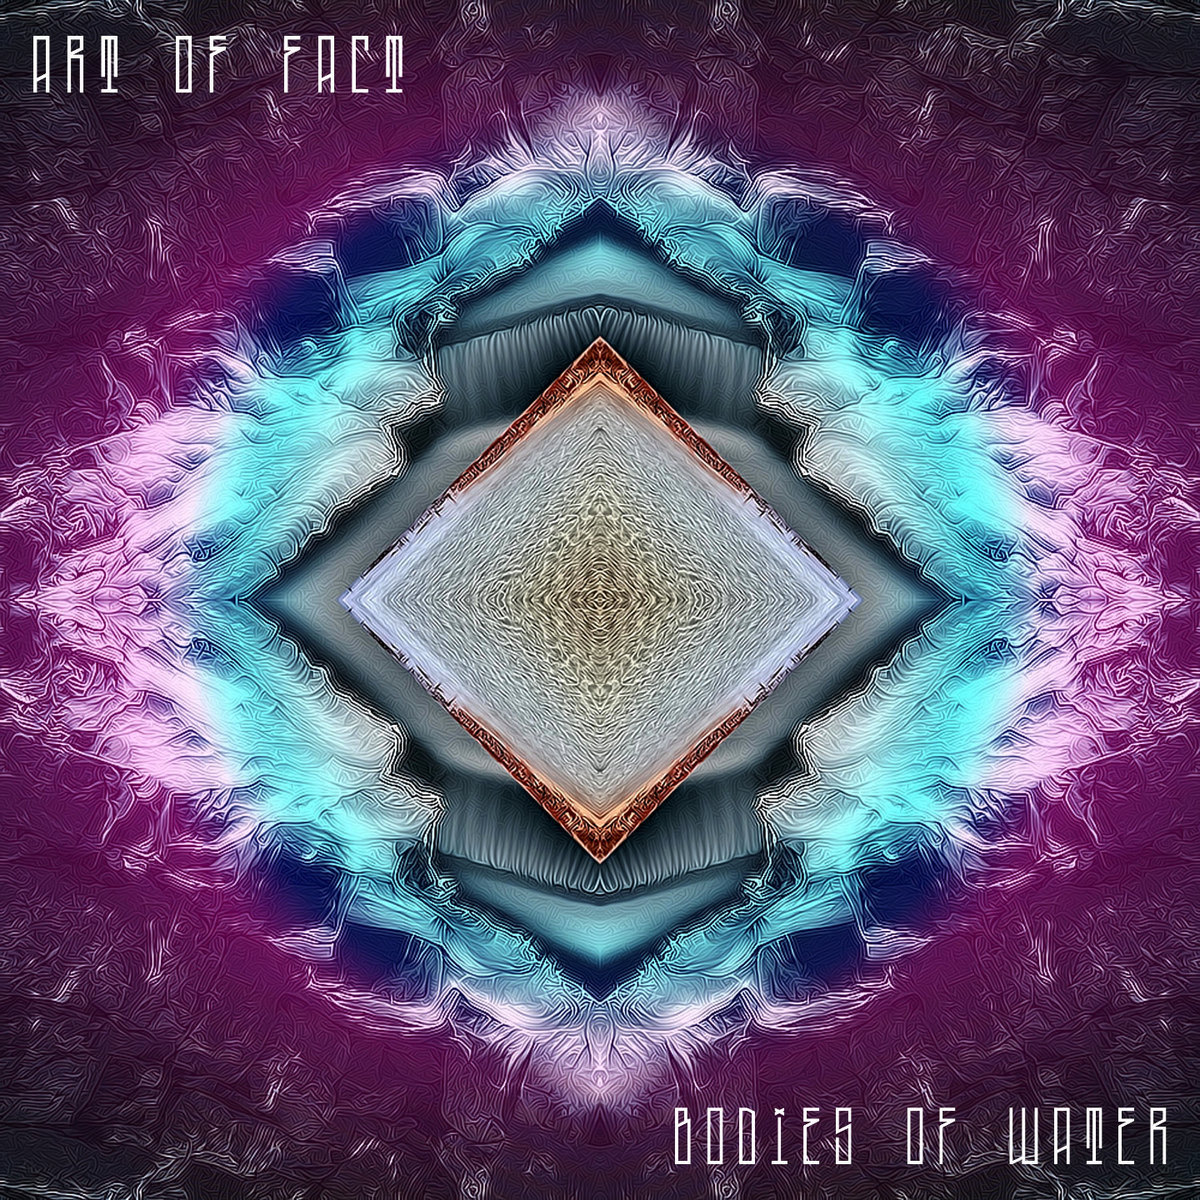 Art of Fact - Velvet Dew Drops @ 'Bodies of Water' album (electronic, dubstep)